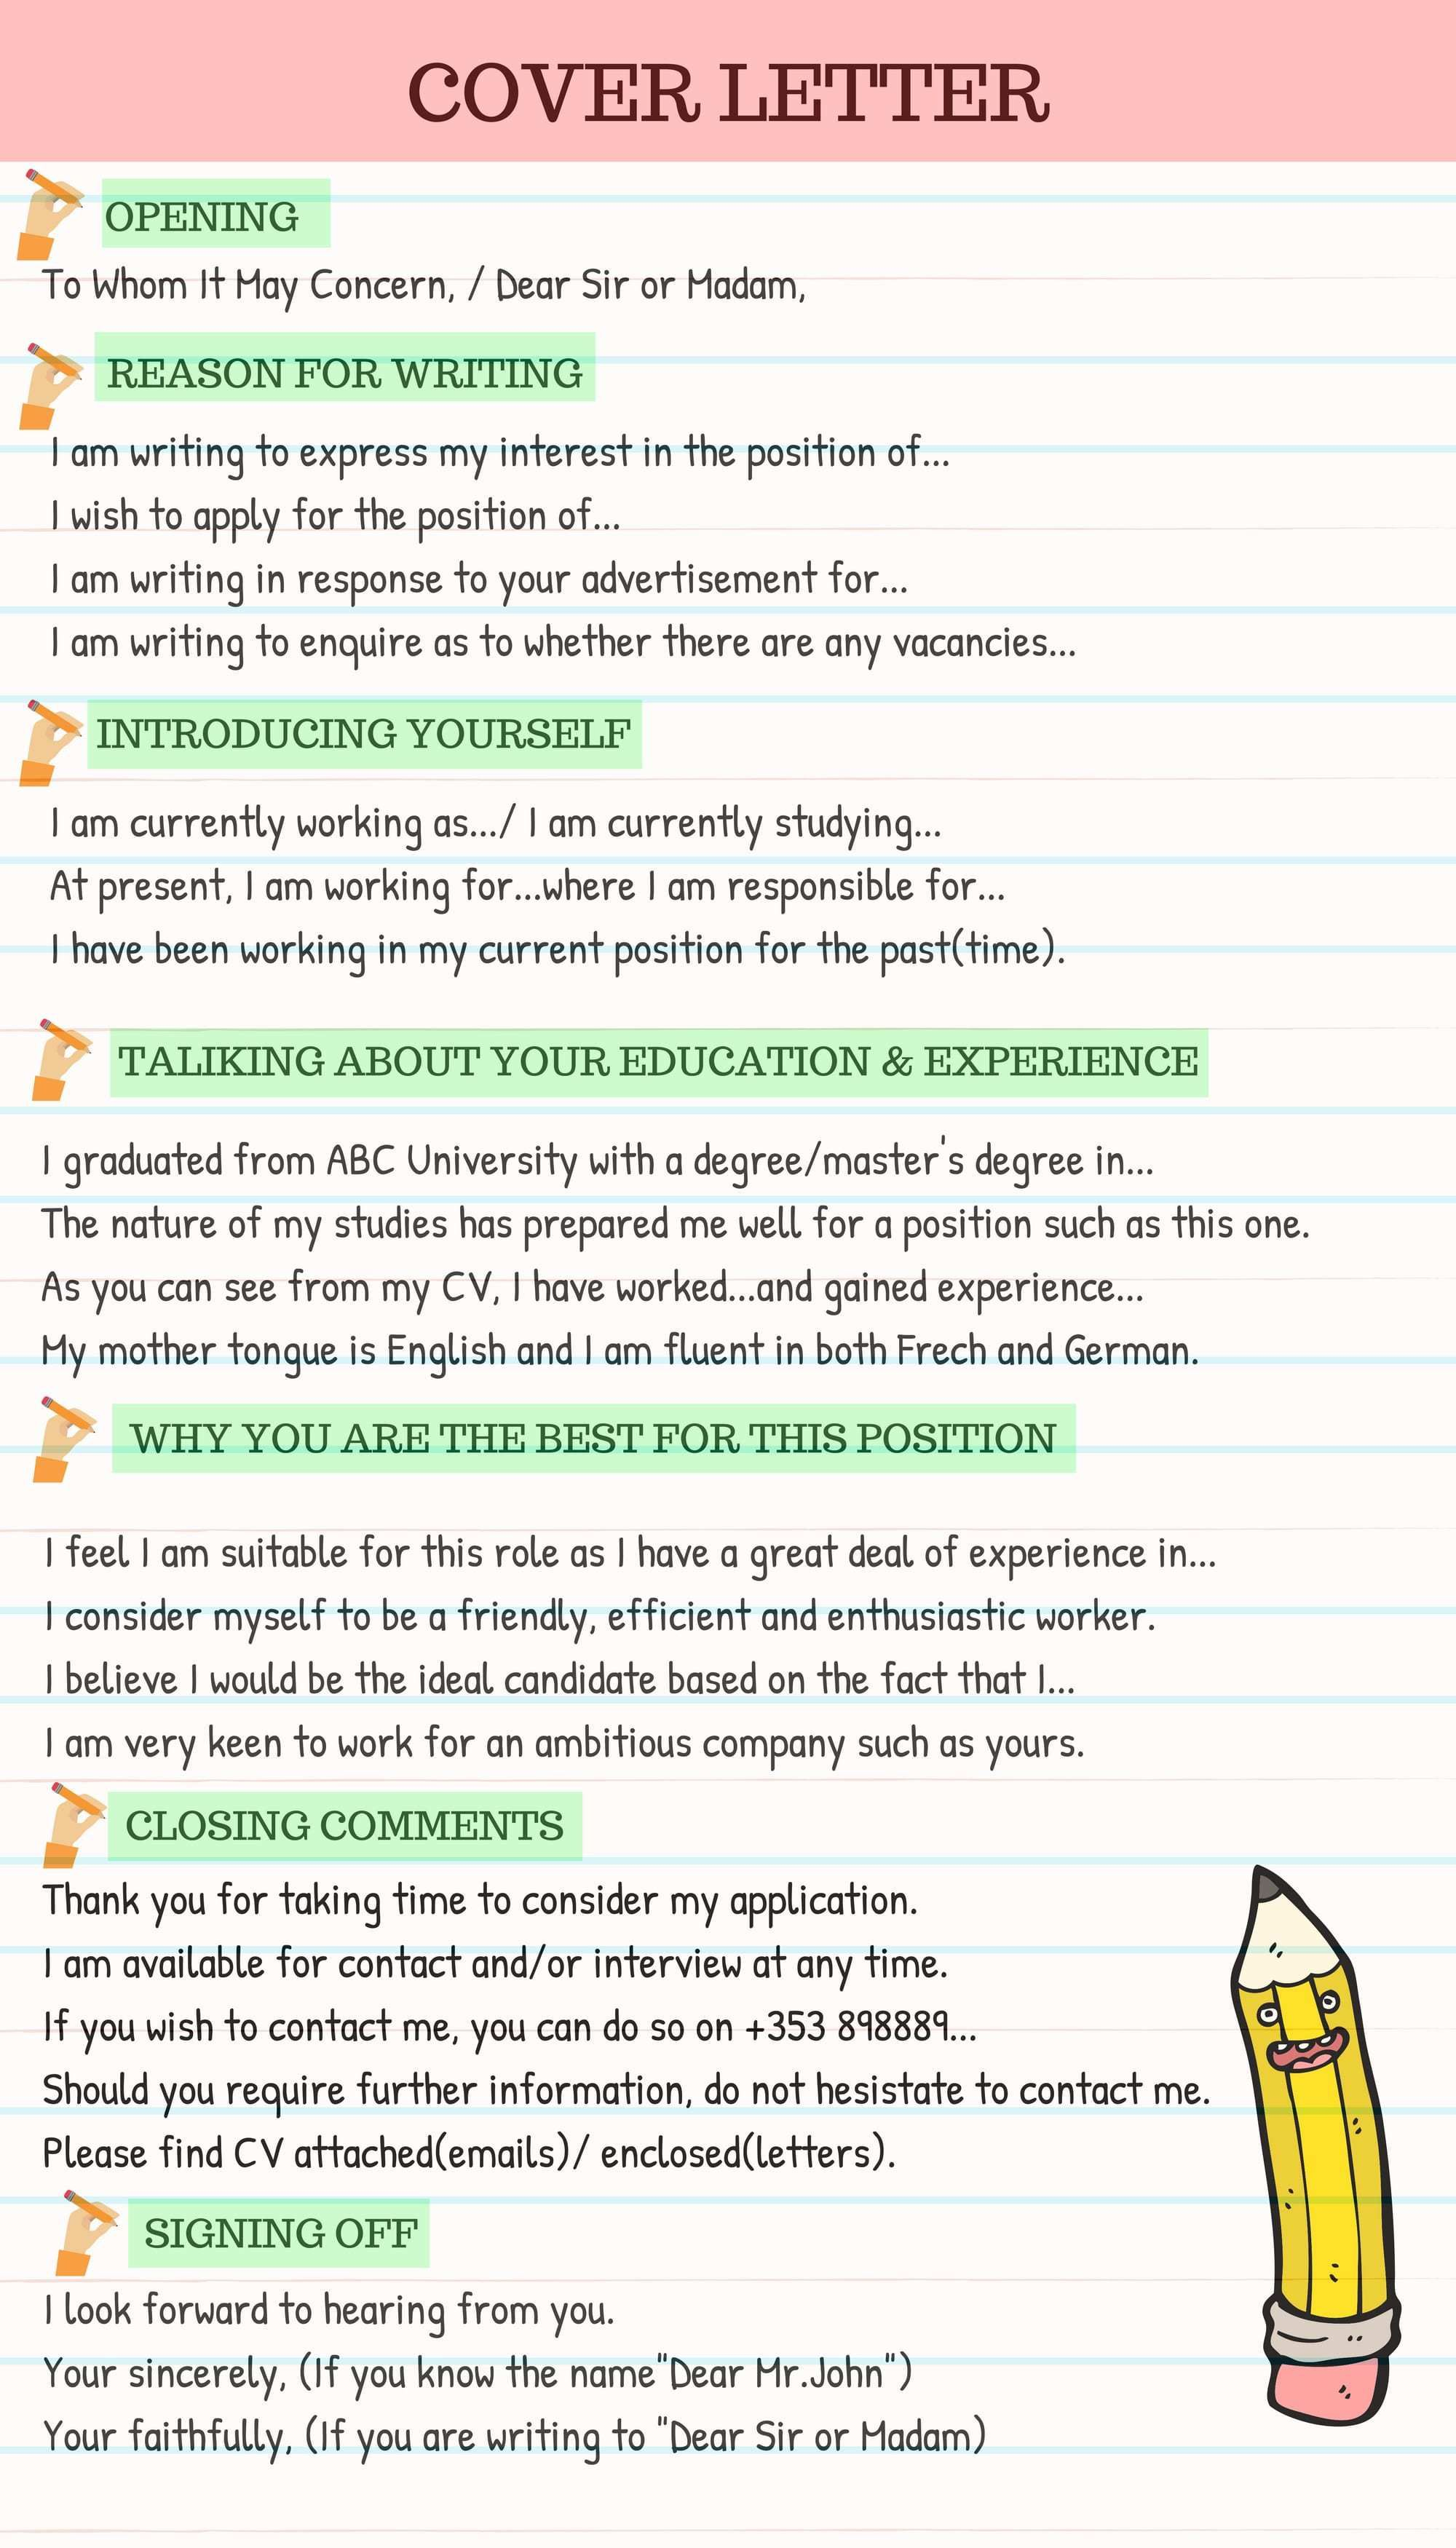 How To Write A Cover Letter Effectively